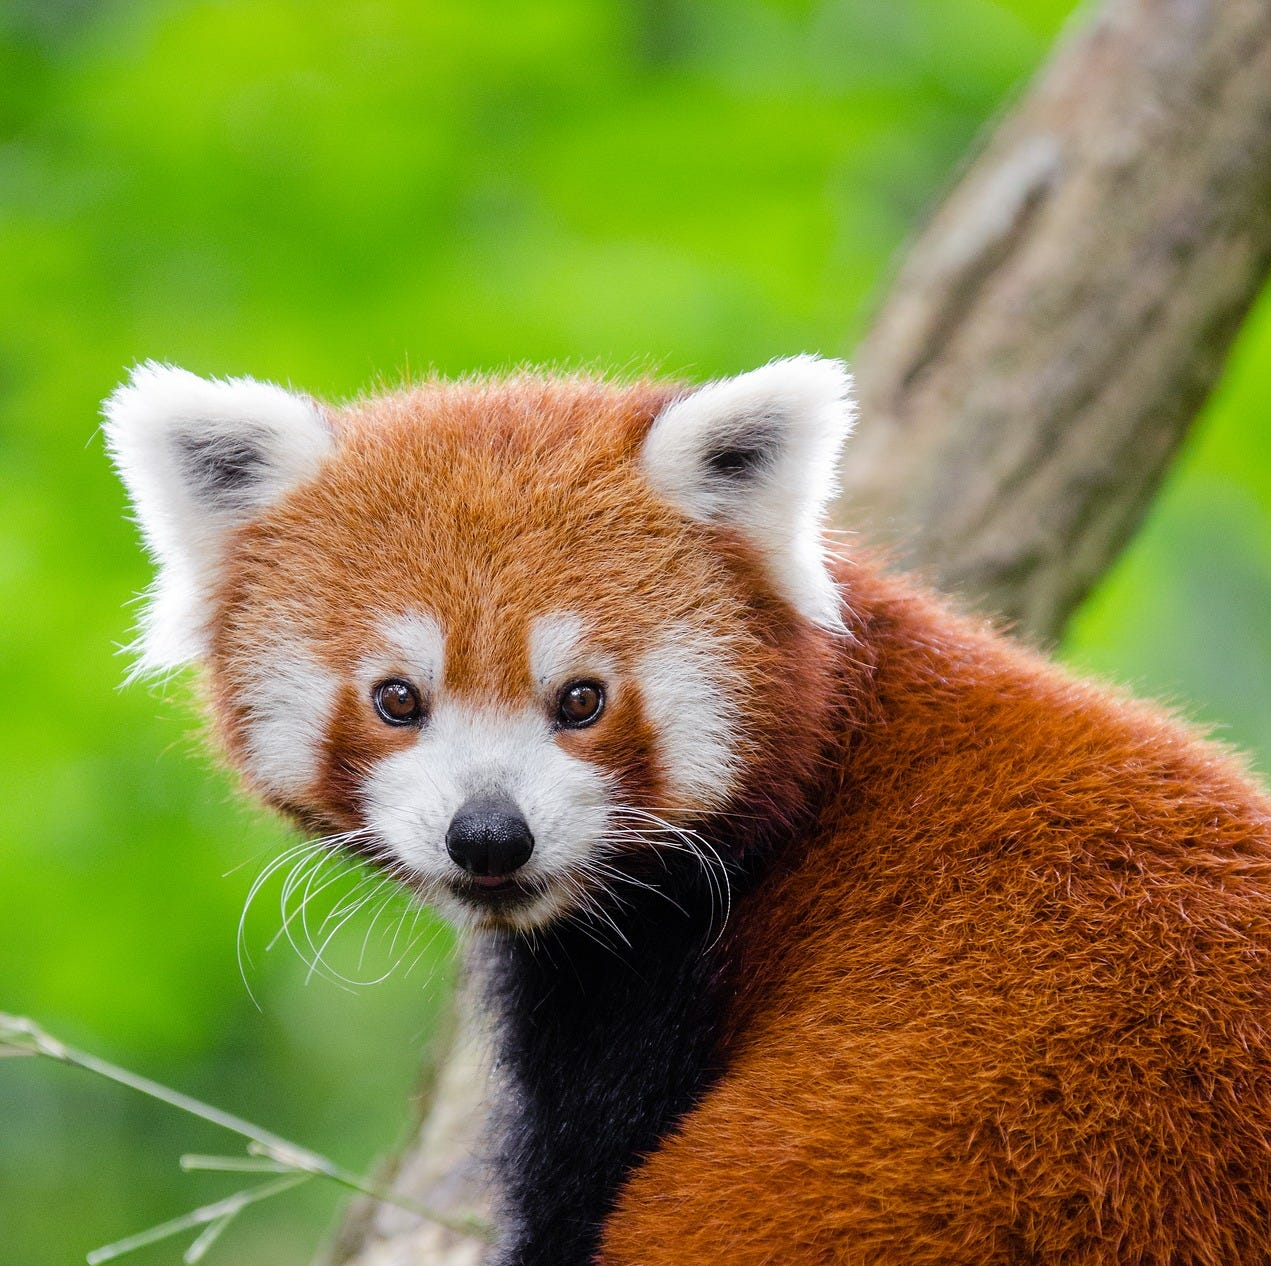 Nature Center Notes: Meet the red pandas